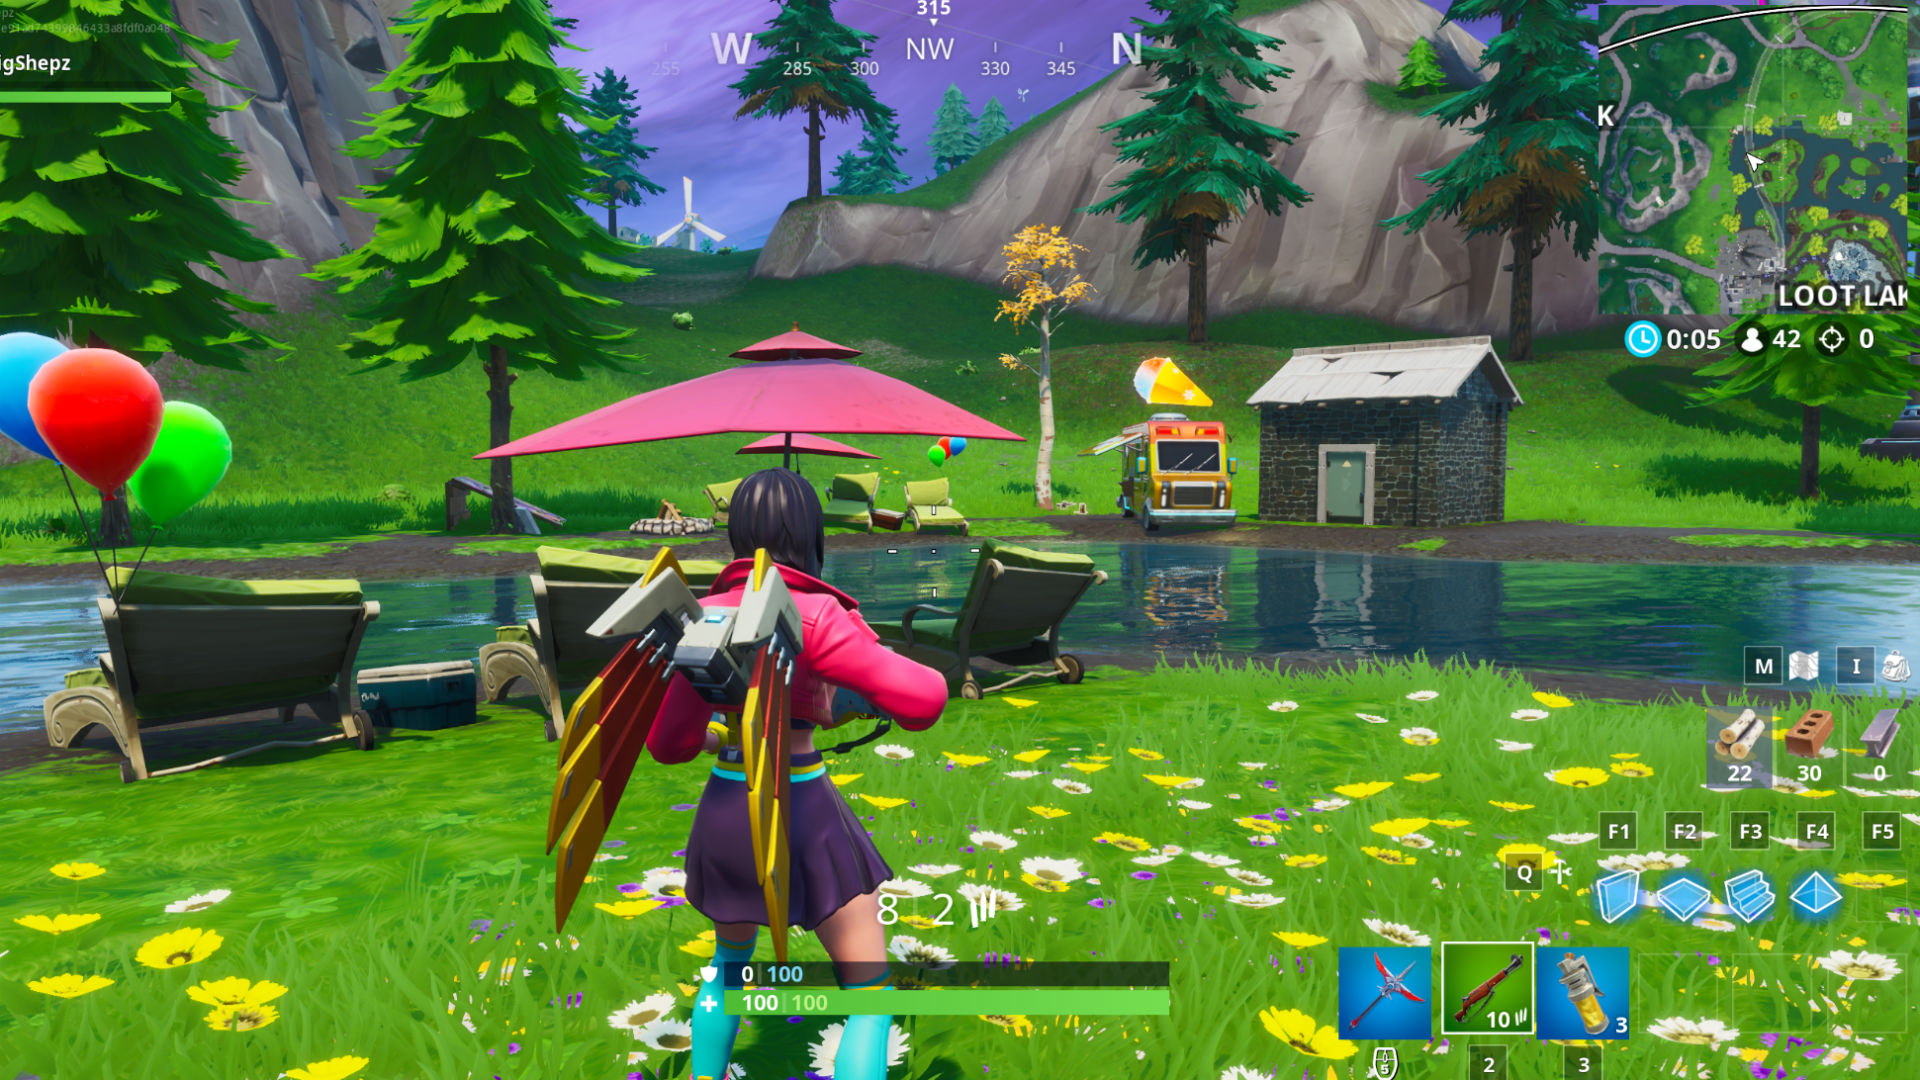 Fortnite beach parties: where to dance at different beach